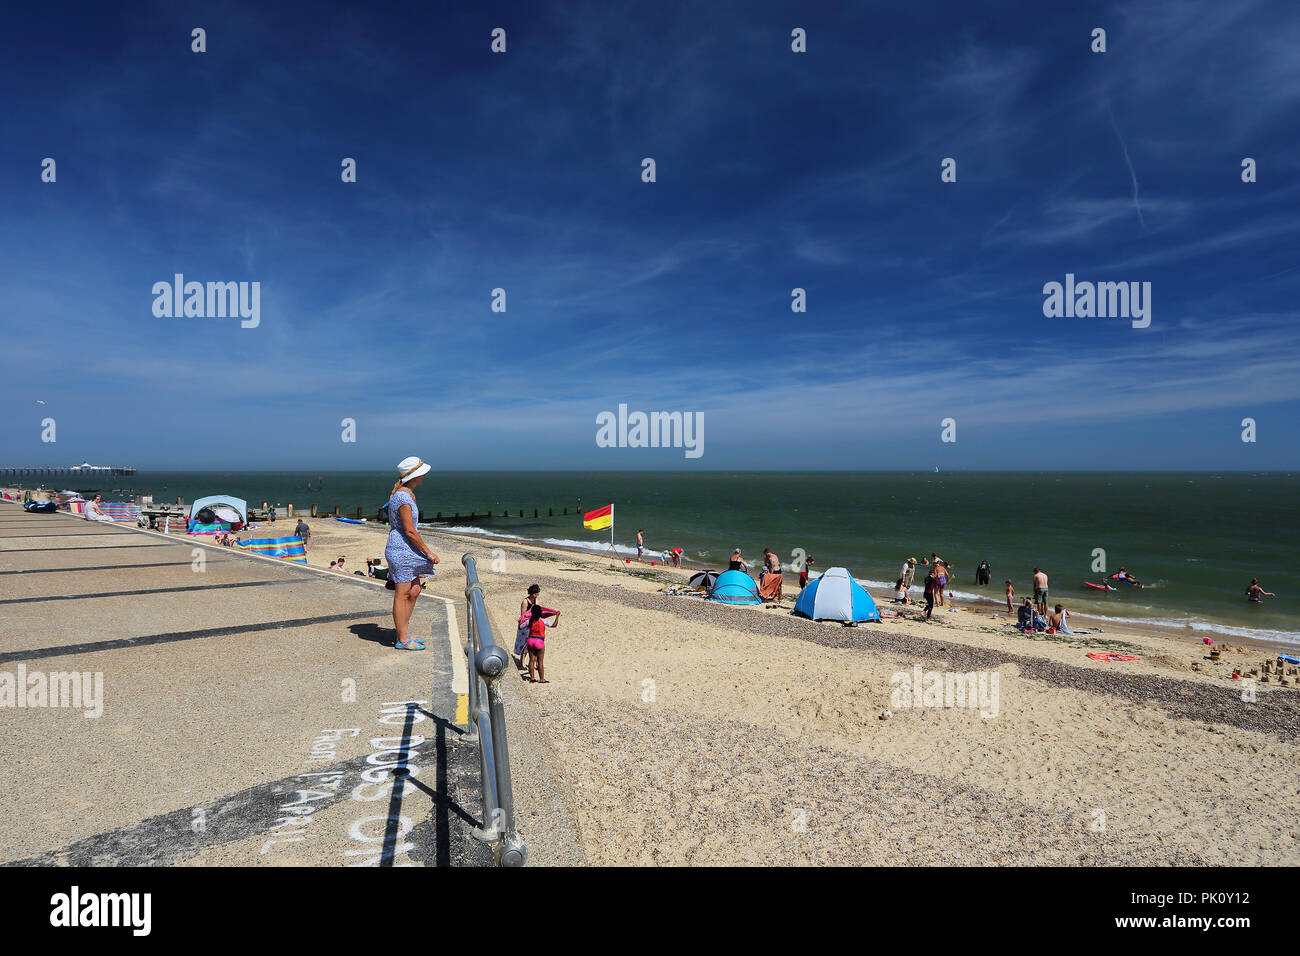 A woman standing on the promenade in front of beach huts gazes out over the beach at Southwold, Suffolk, UK during the heatwave of 2018. - Stock Image